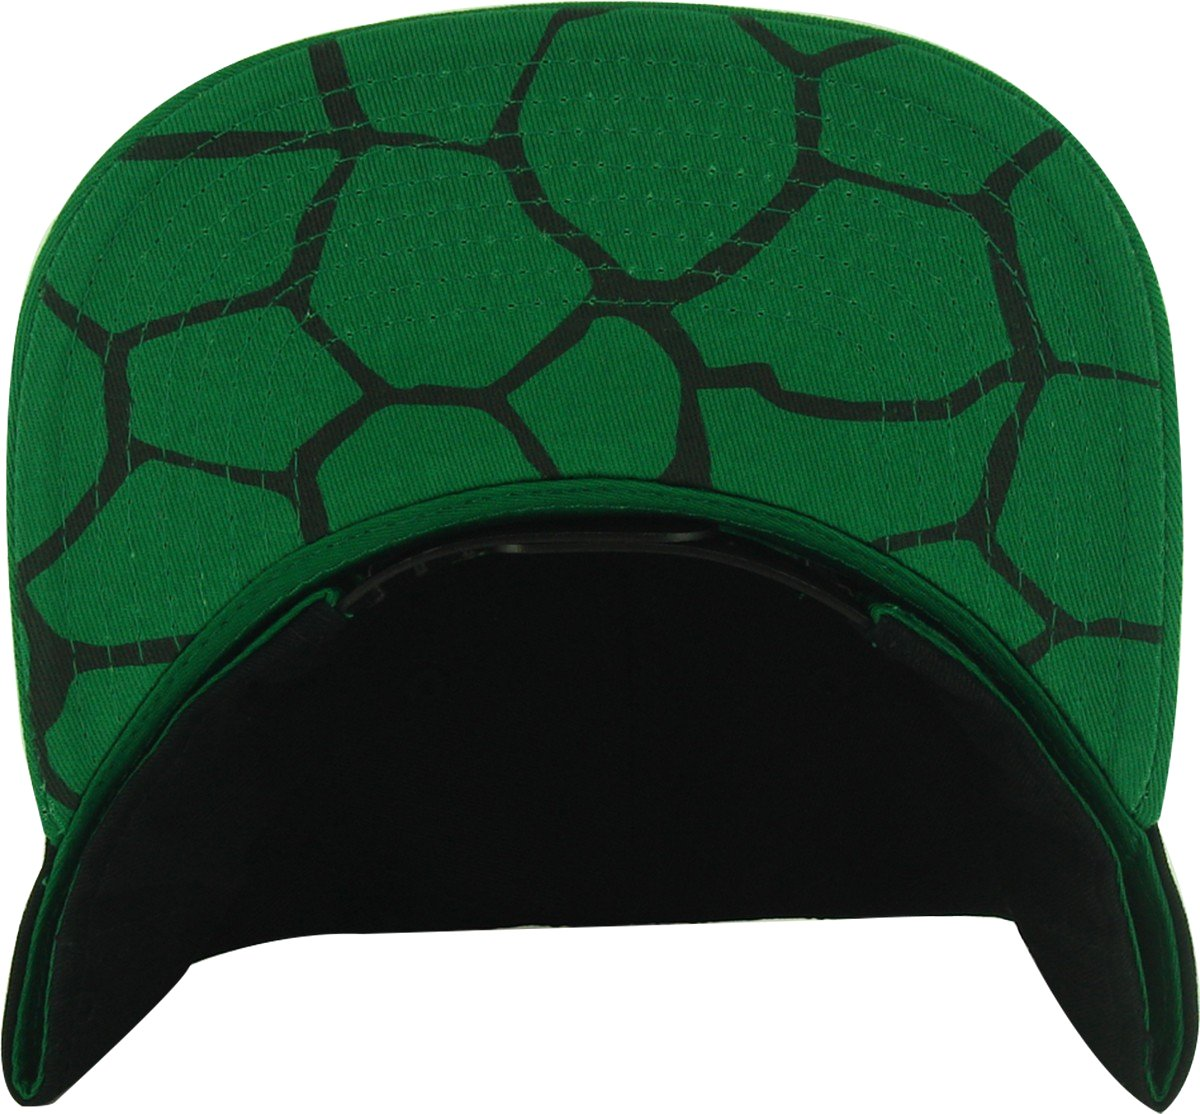 Ninja turtle shell logo - photo#5